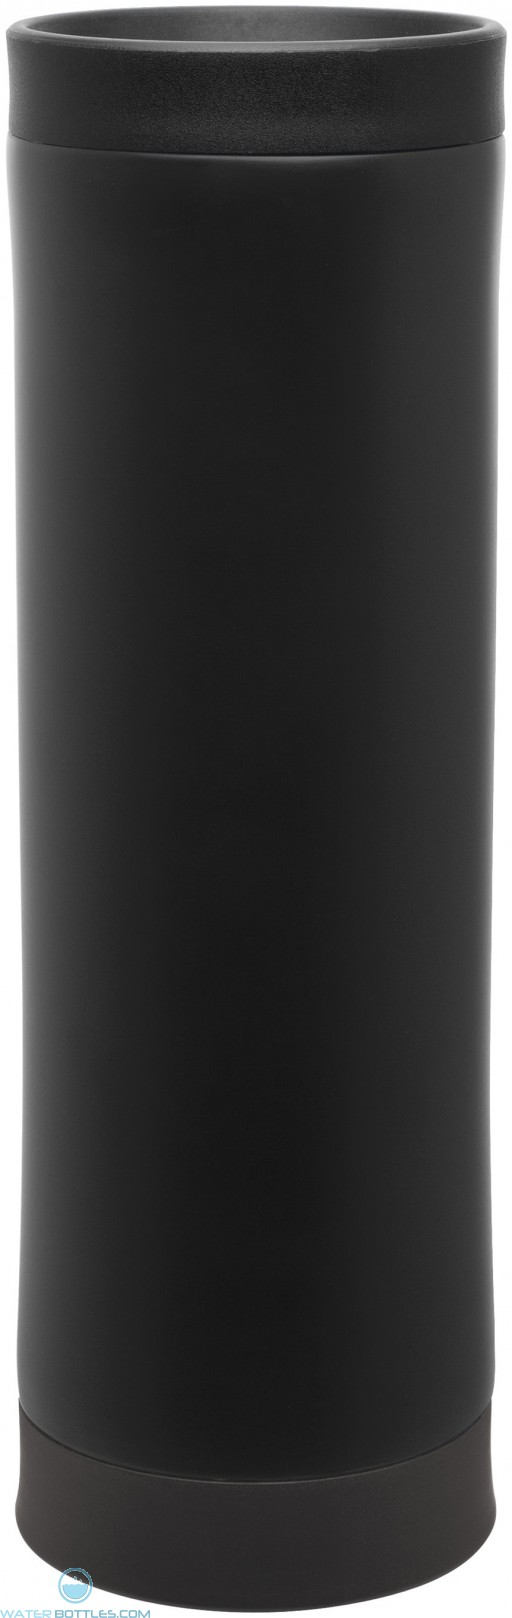 Americano Double Wall Thermal Tumblers | 16 oz - Matte Black